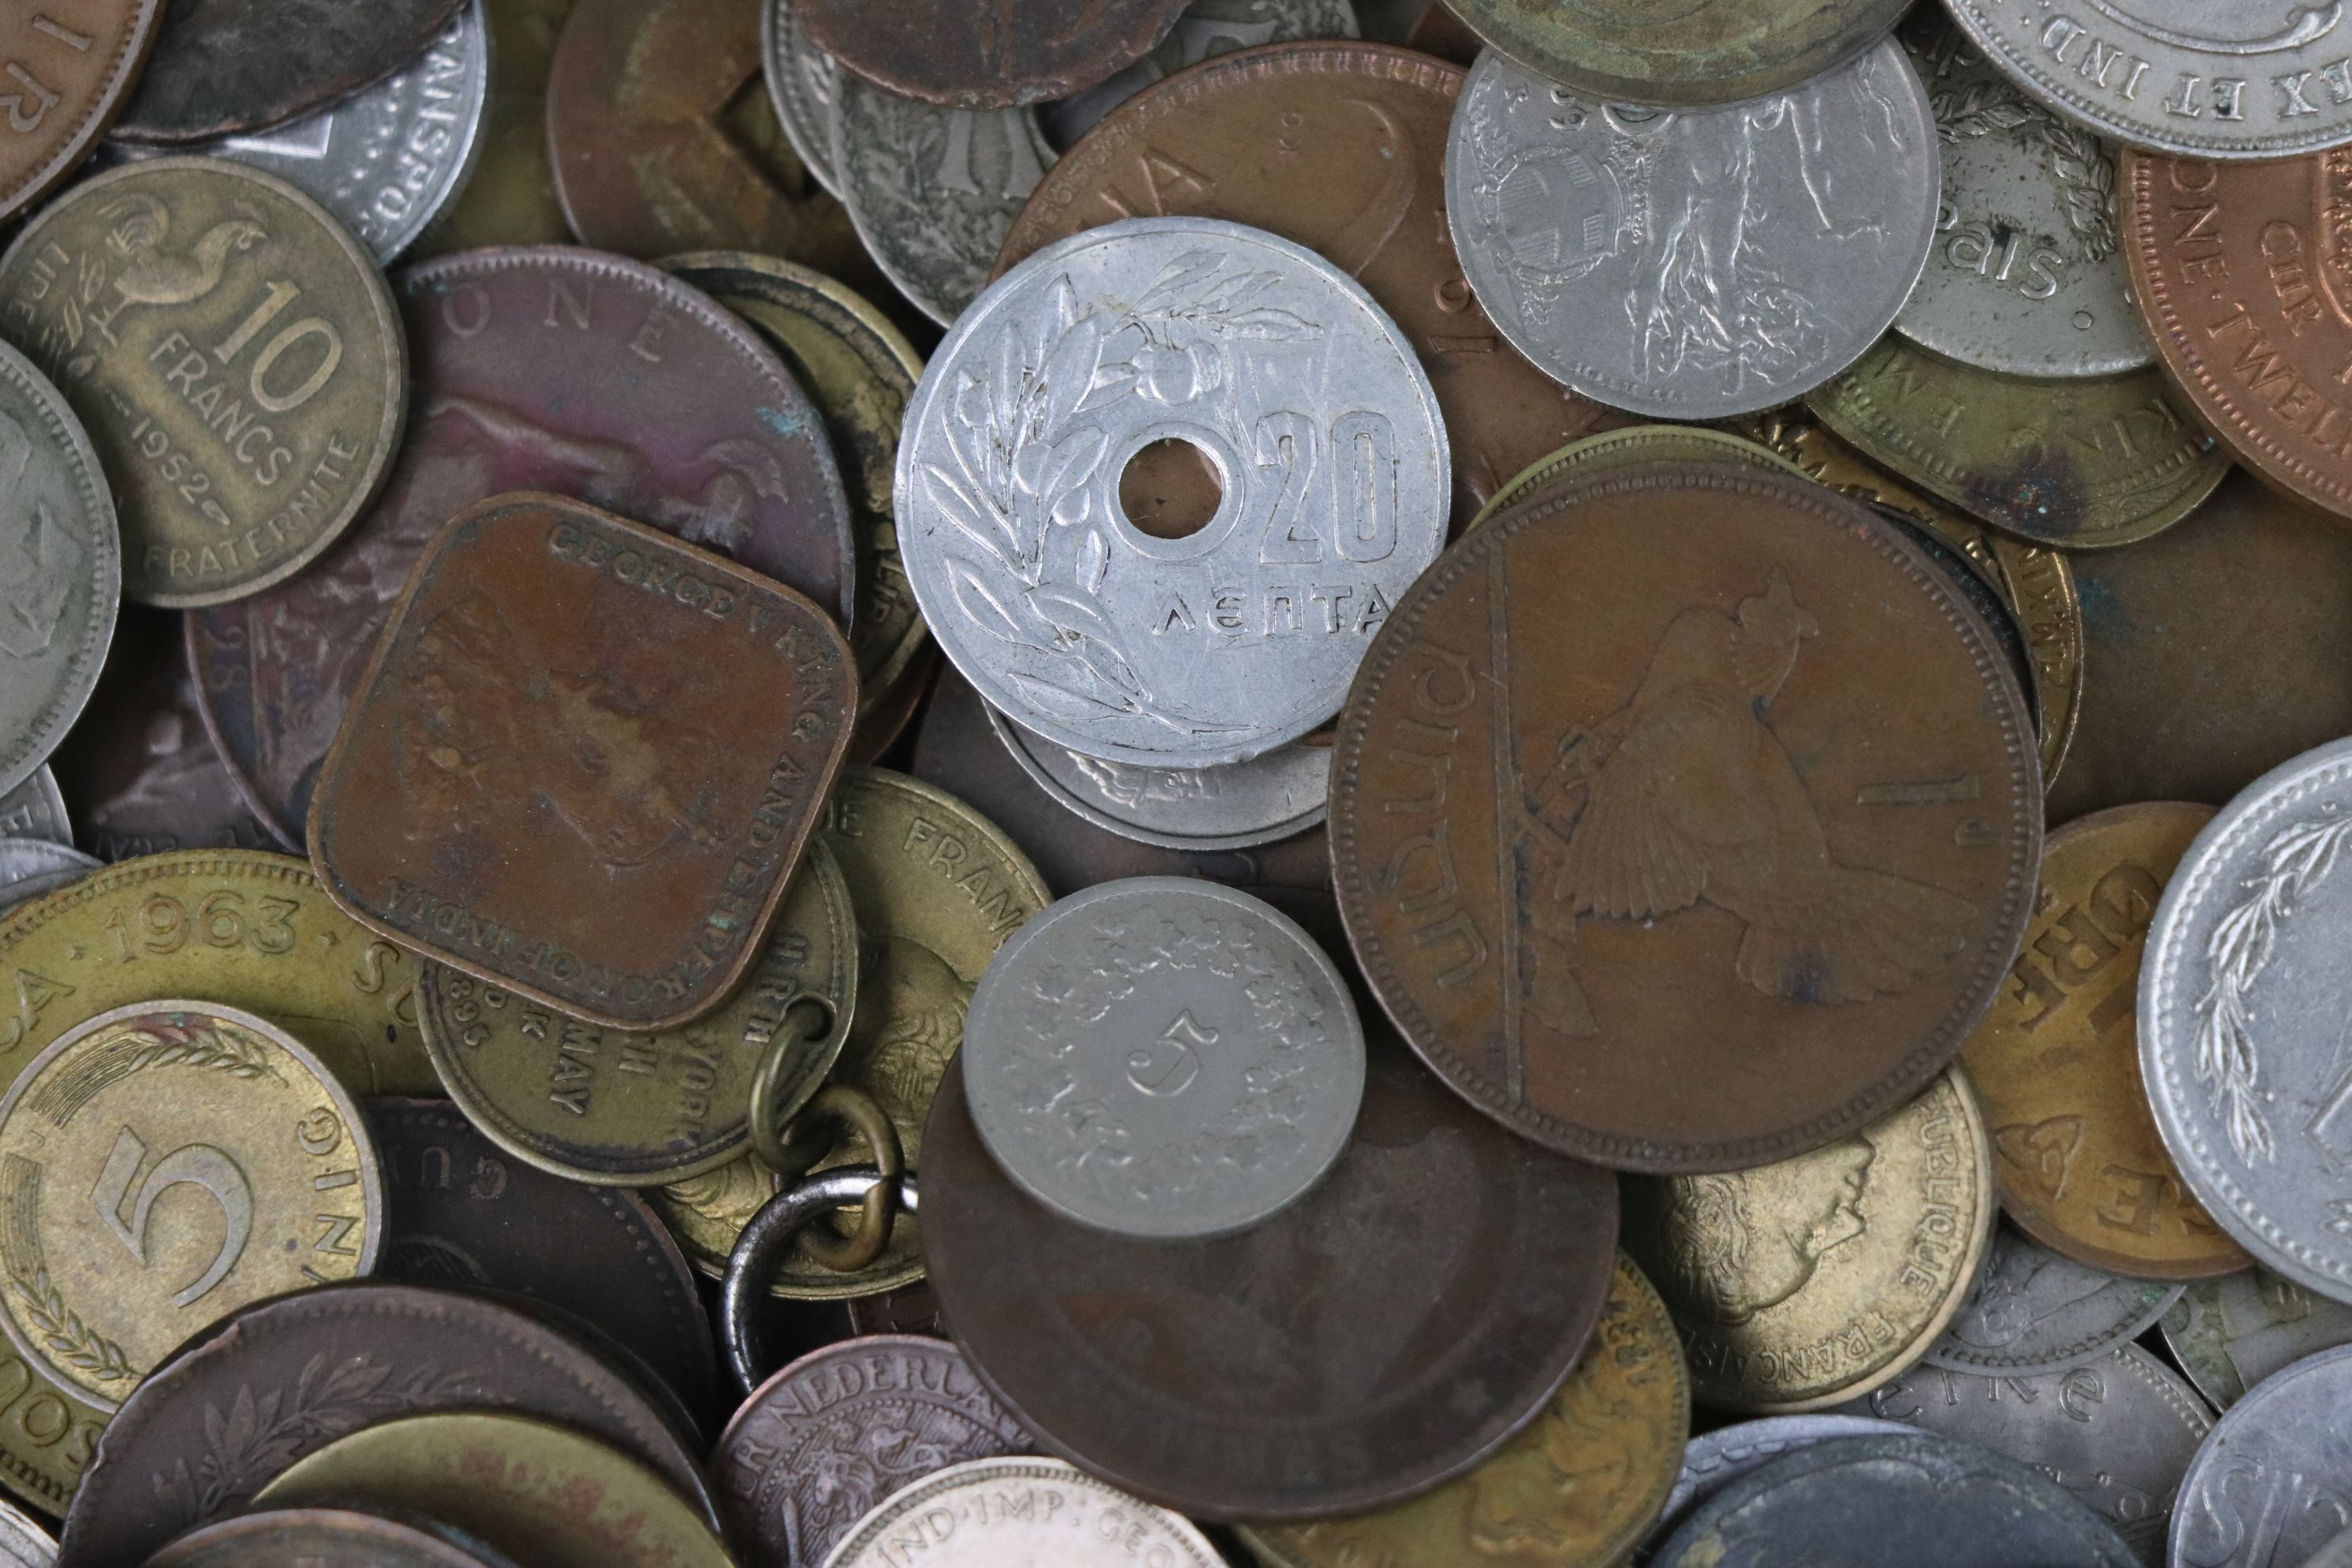 A collection of mixed 19th and 20th century British and world coins. - Image 7 of 7